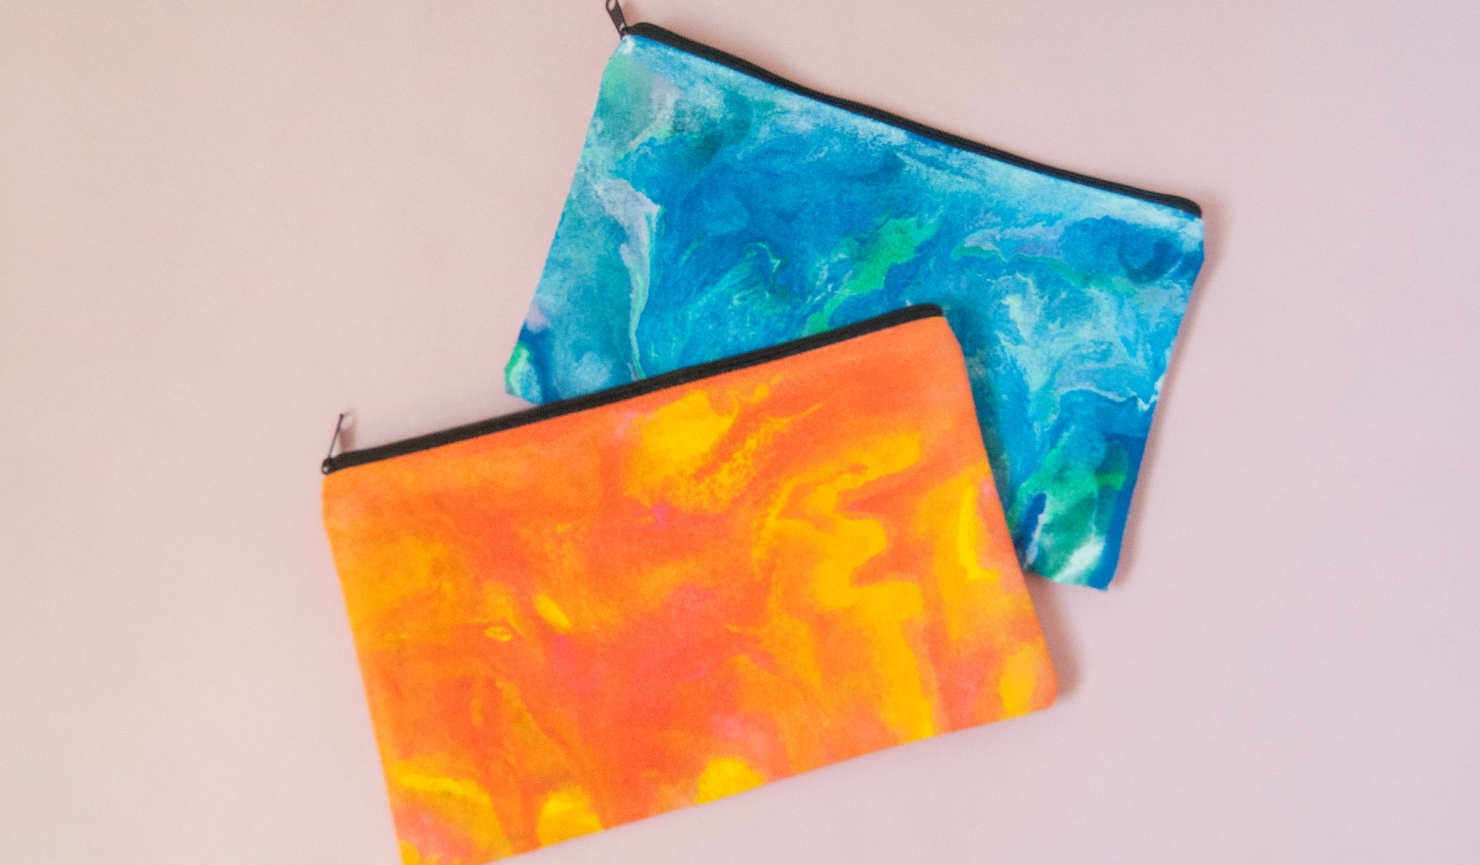 How To Use Brush-On Fabric Paint for Paint Pouring